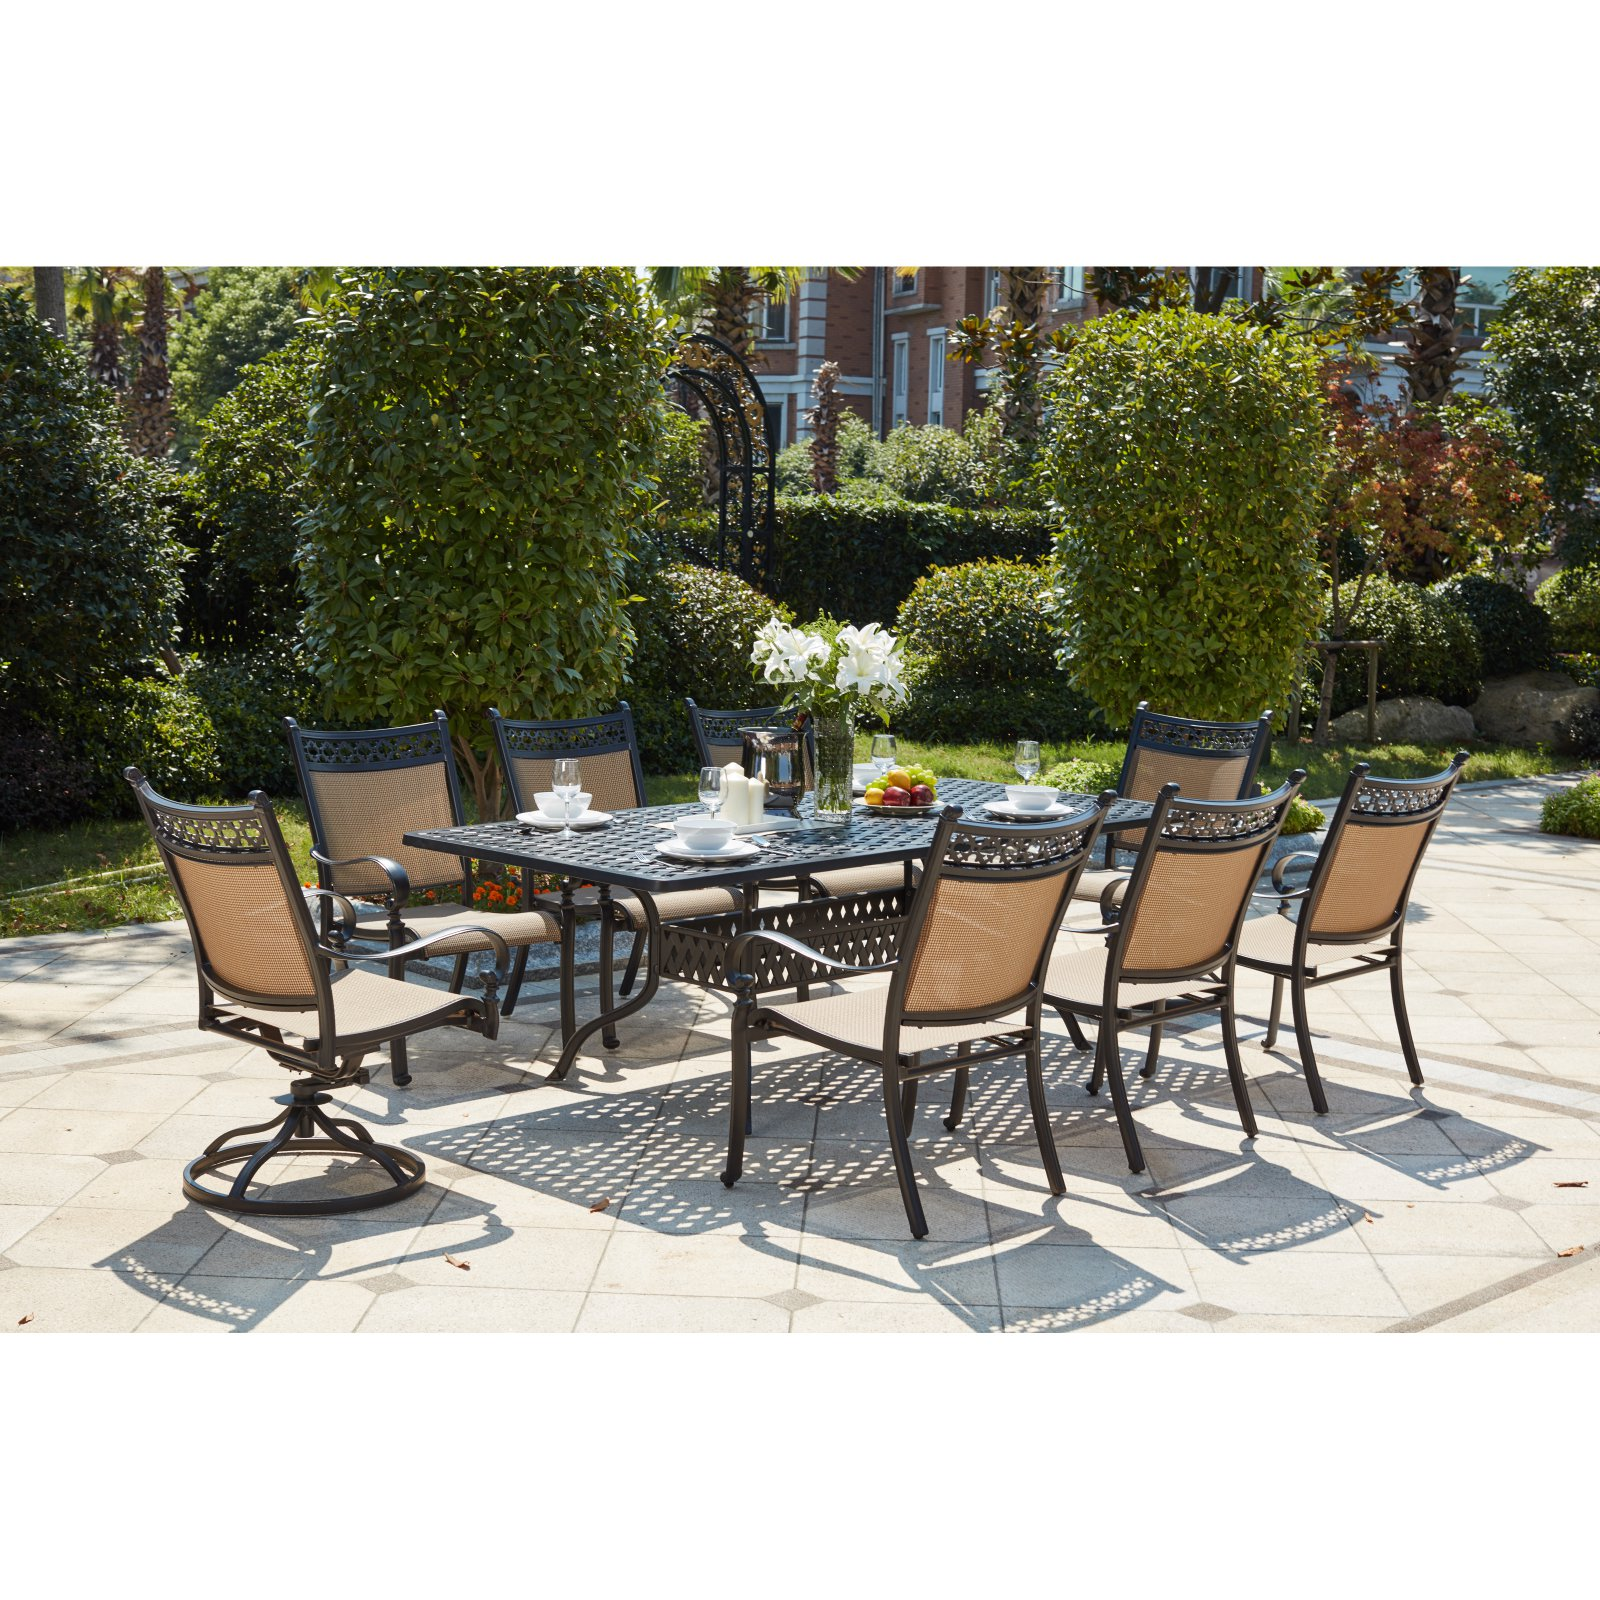 Outdoor Darlee Mountain View 9 Piece